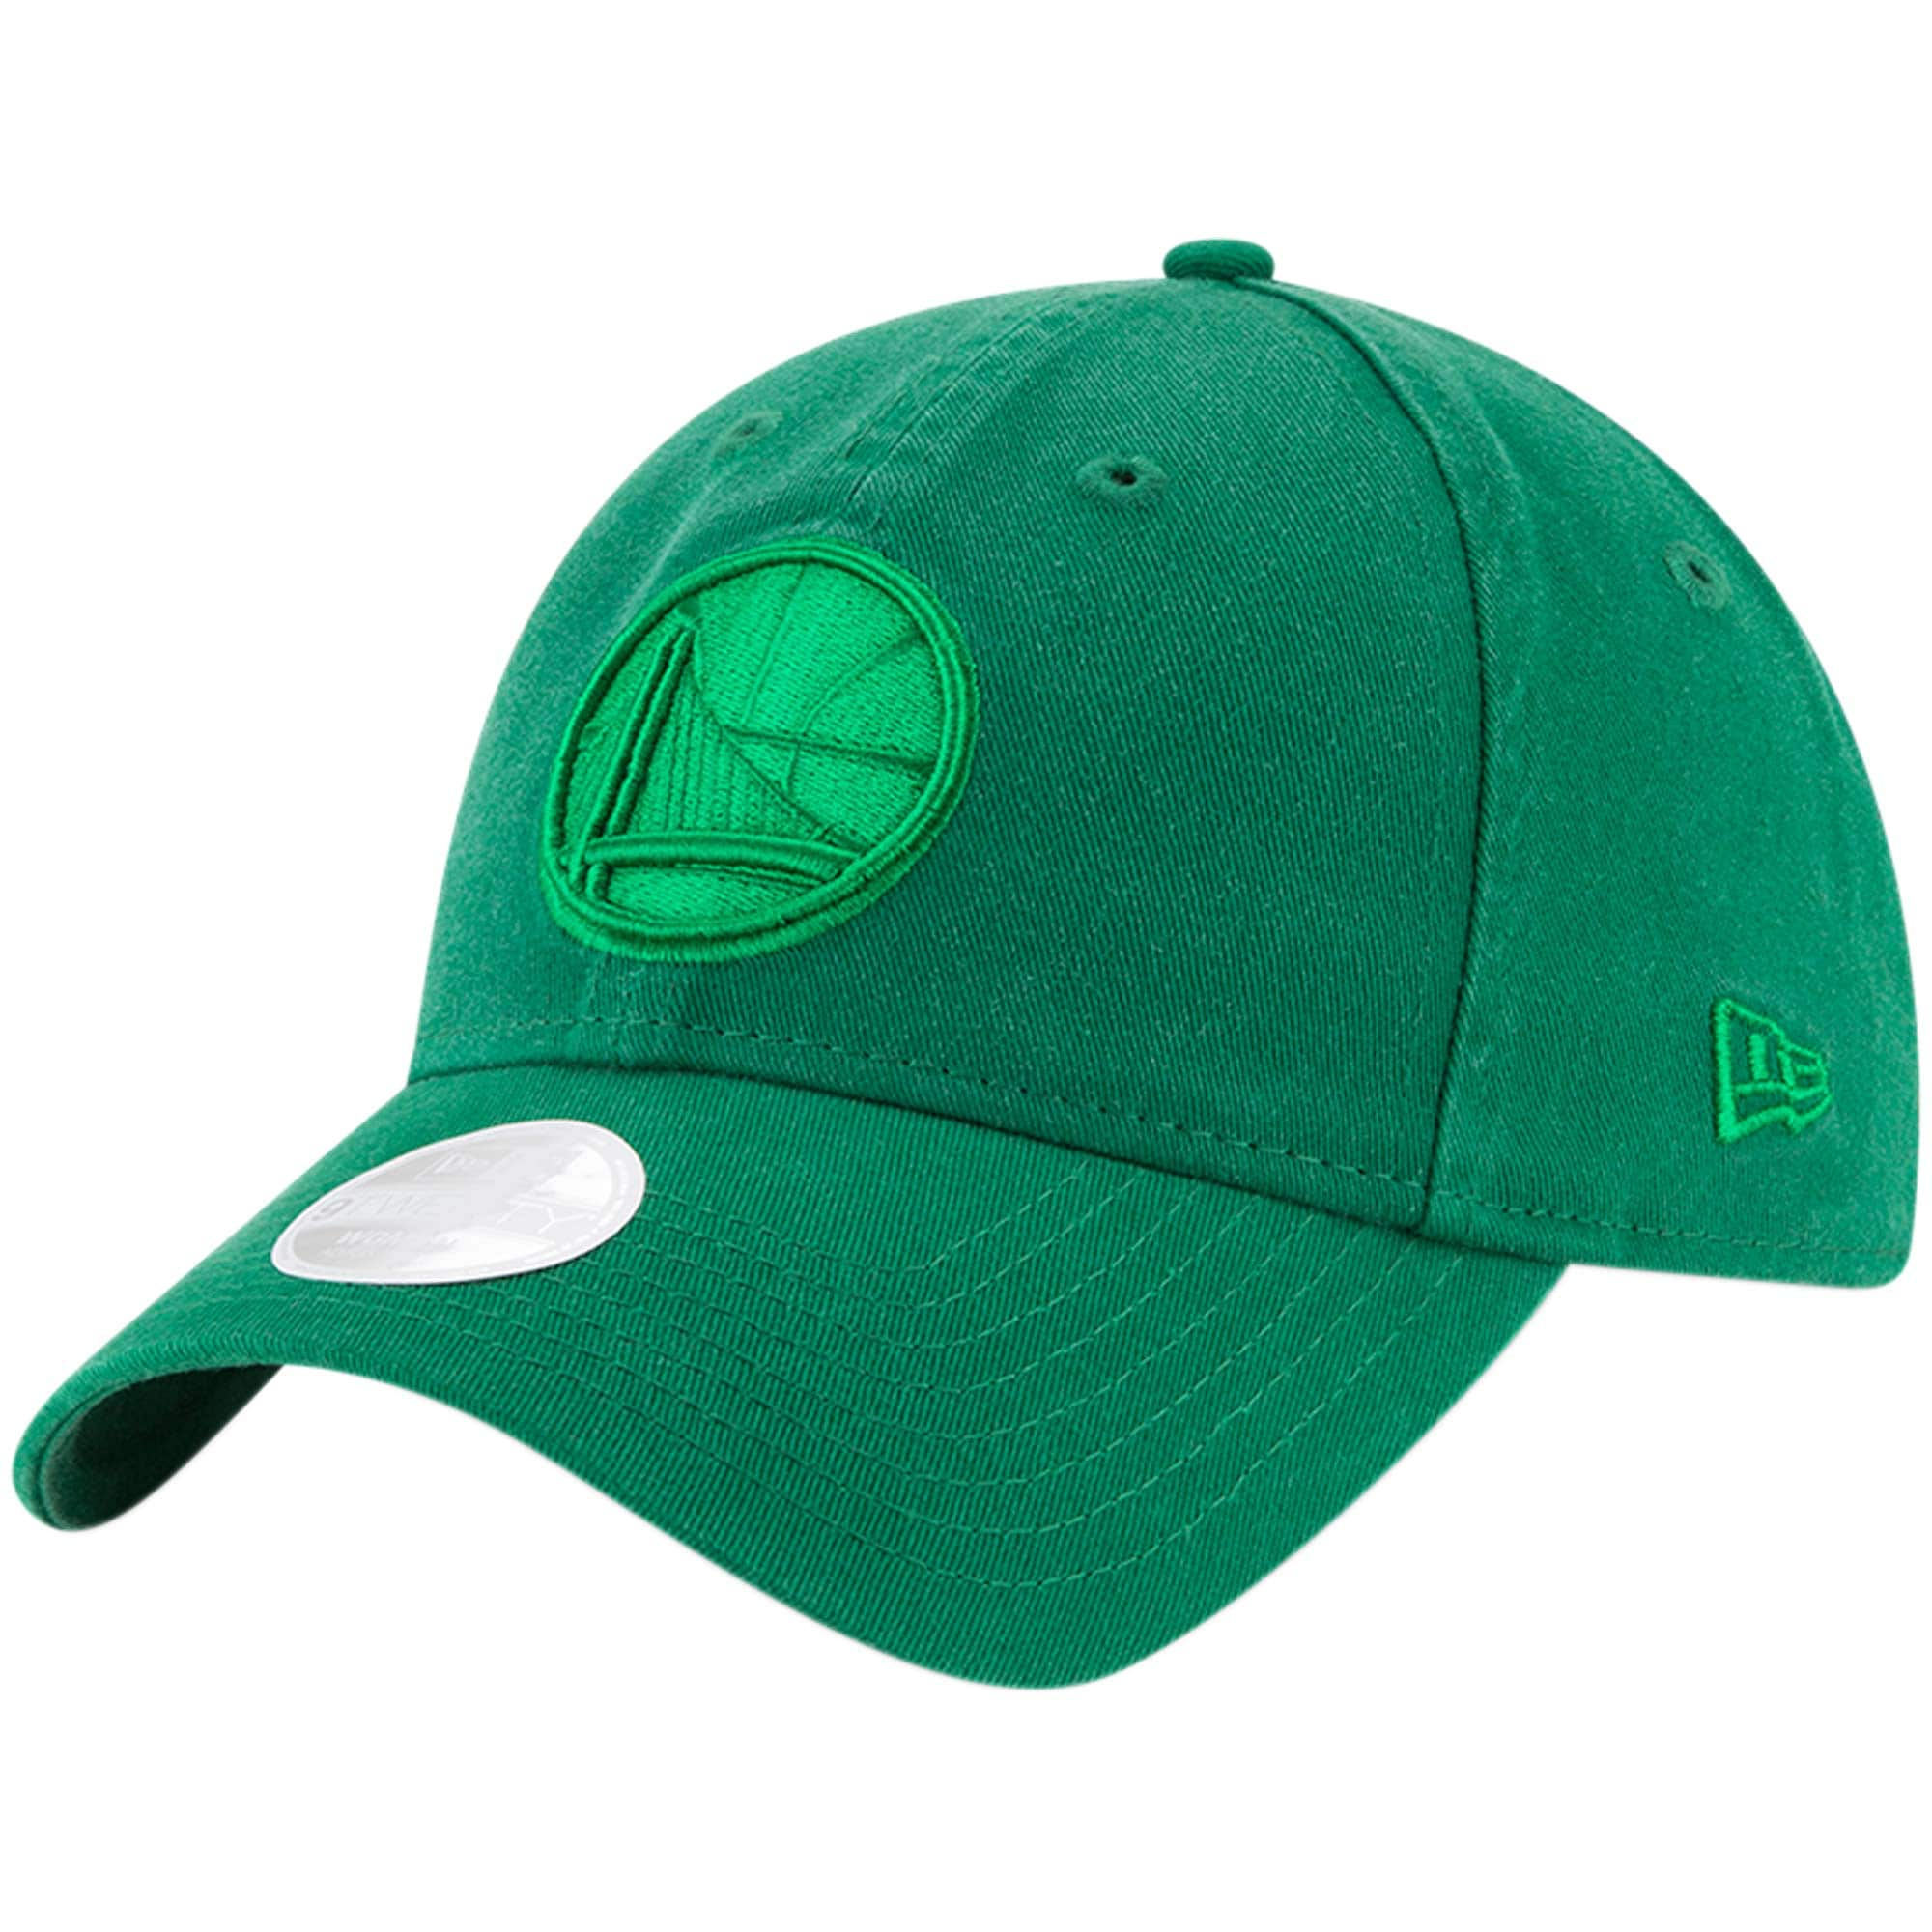 Golden State Warriors New Era Women's St. Patrick's Day Core Classic 9TWENTY Adjustable Hat - Kelly Green